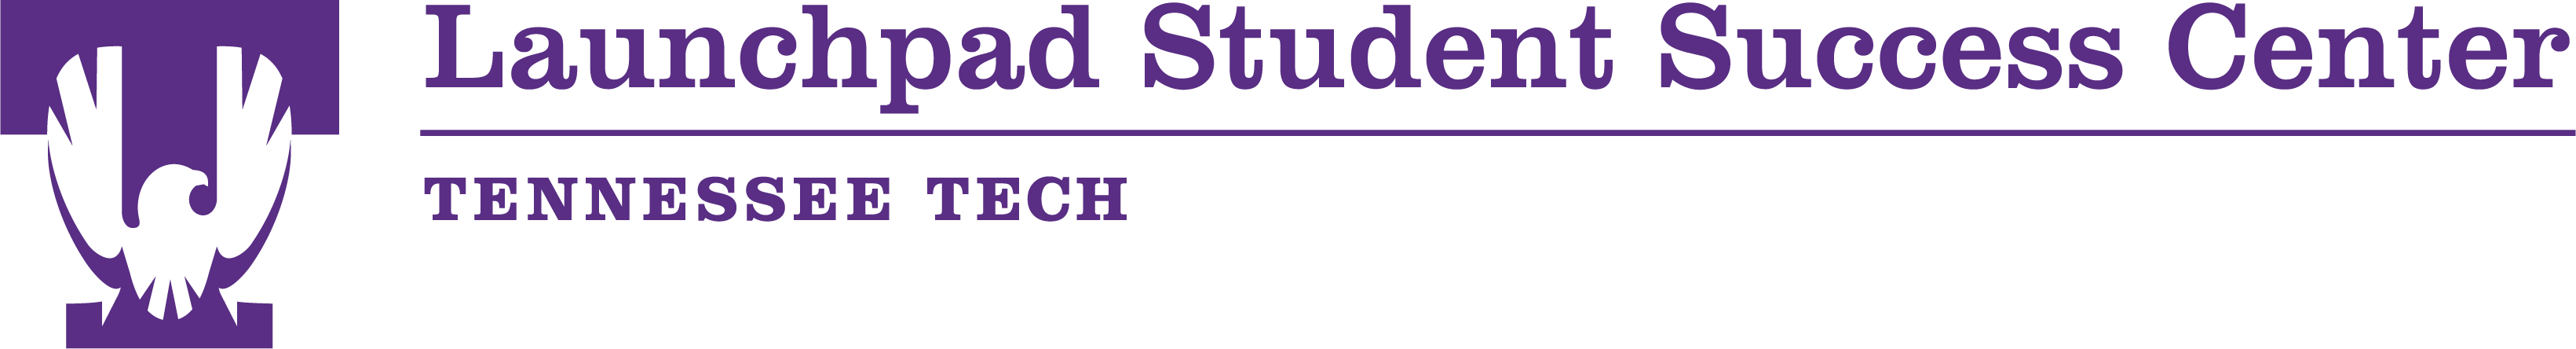 Image of the Launchpad Student Success Center logo in Purple.